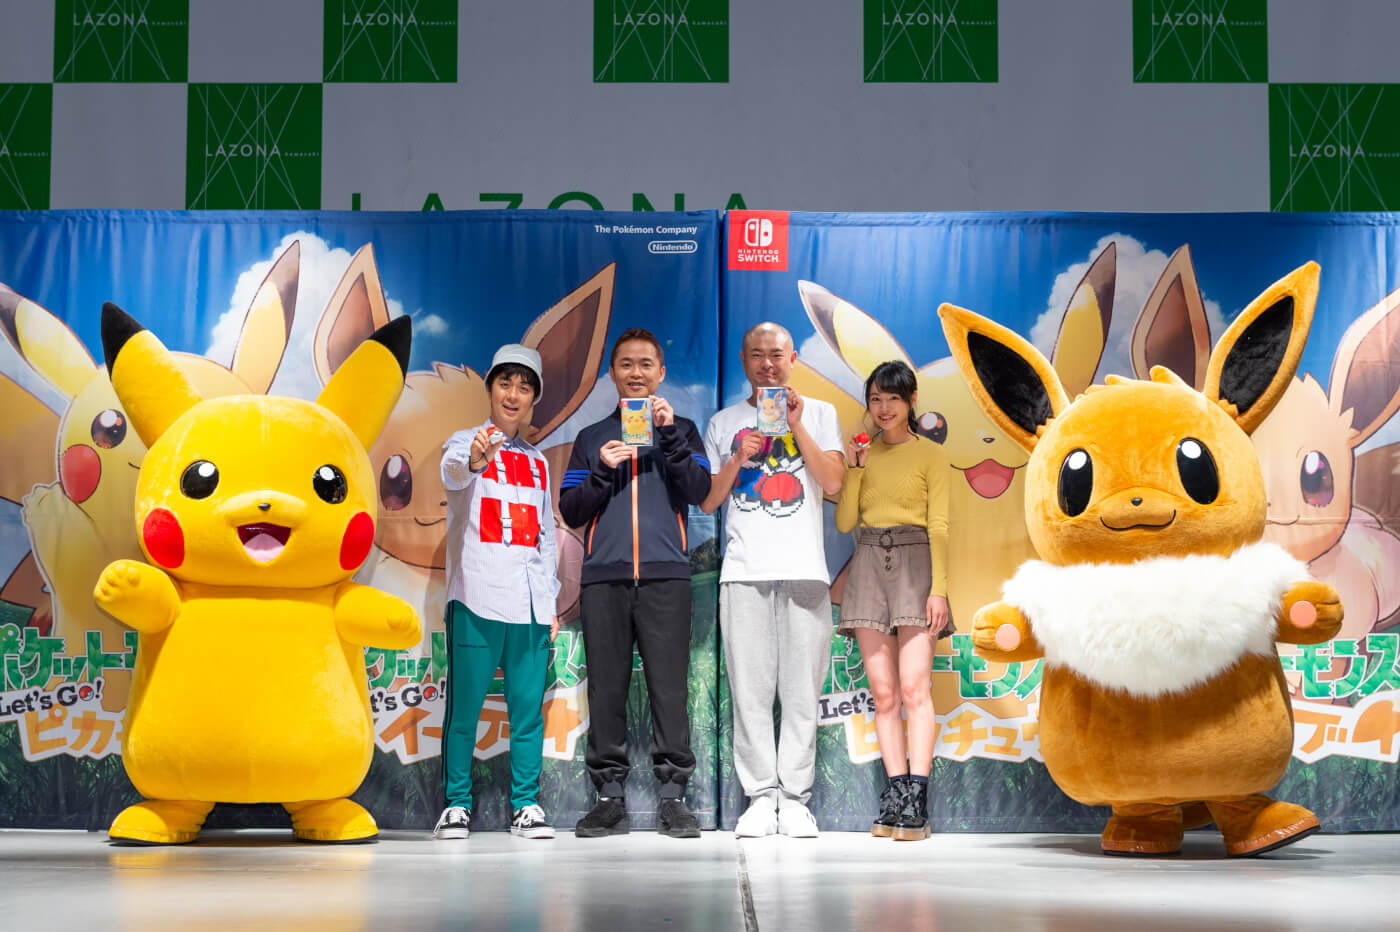 Nintendo Switch Lanza El Pokemon Let S Go Pikachu Let S Go Eevee